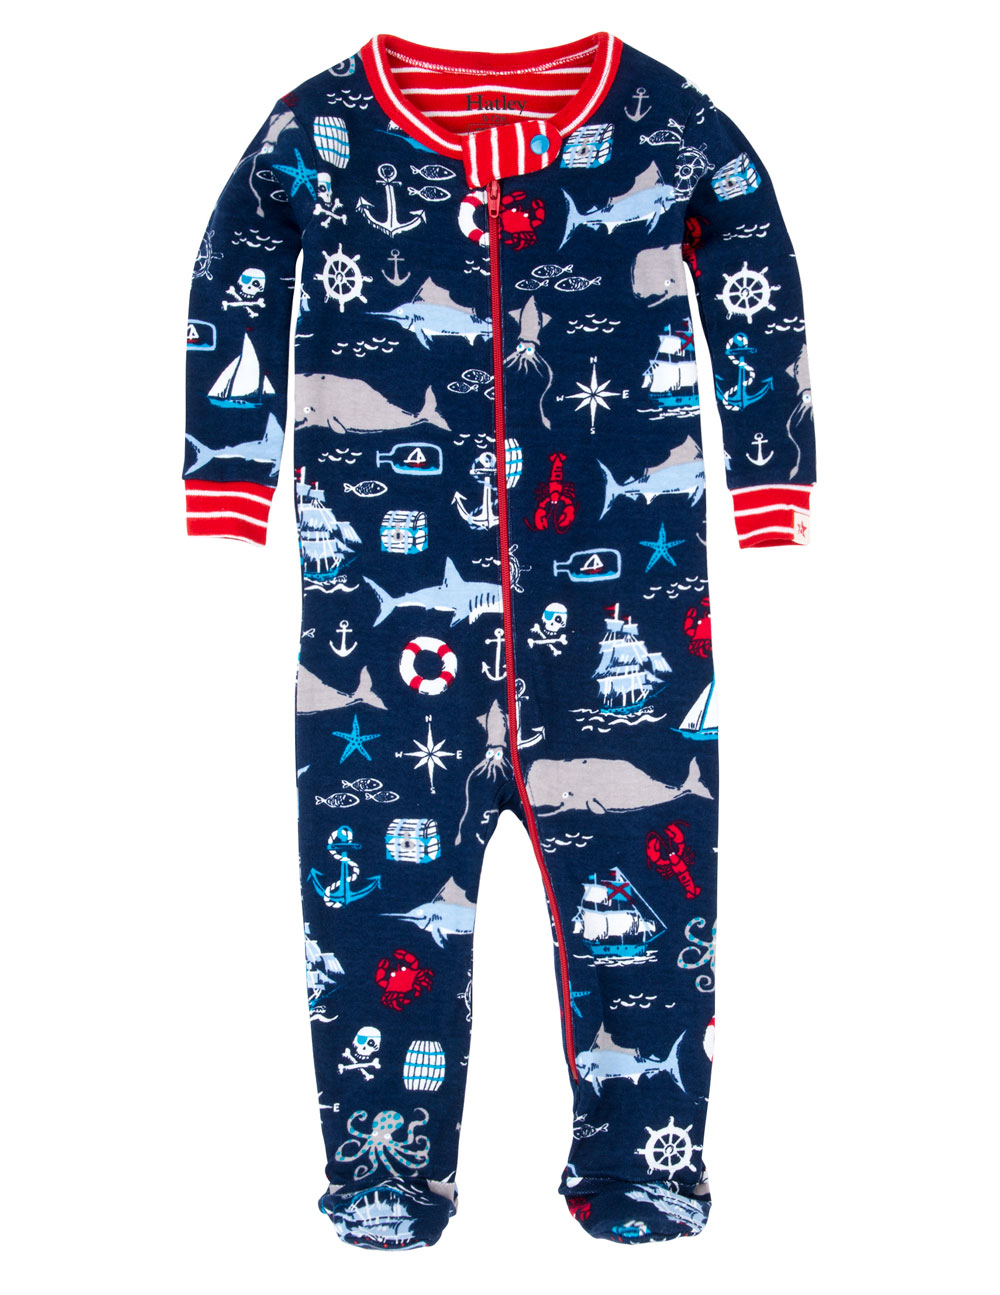 Hatley Babygro w feet - Vintage Nautical